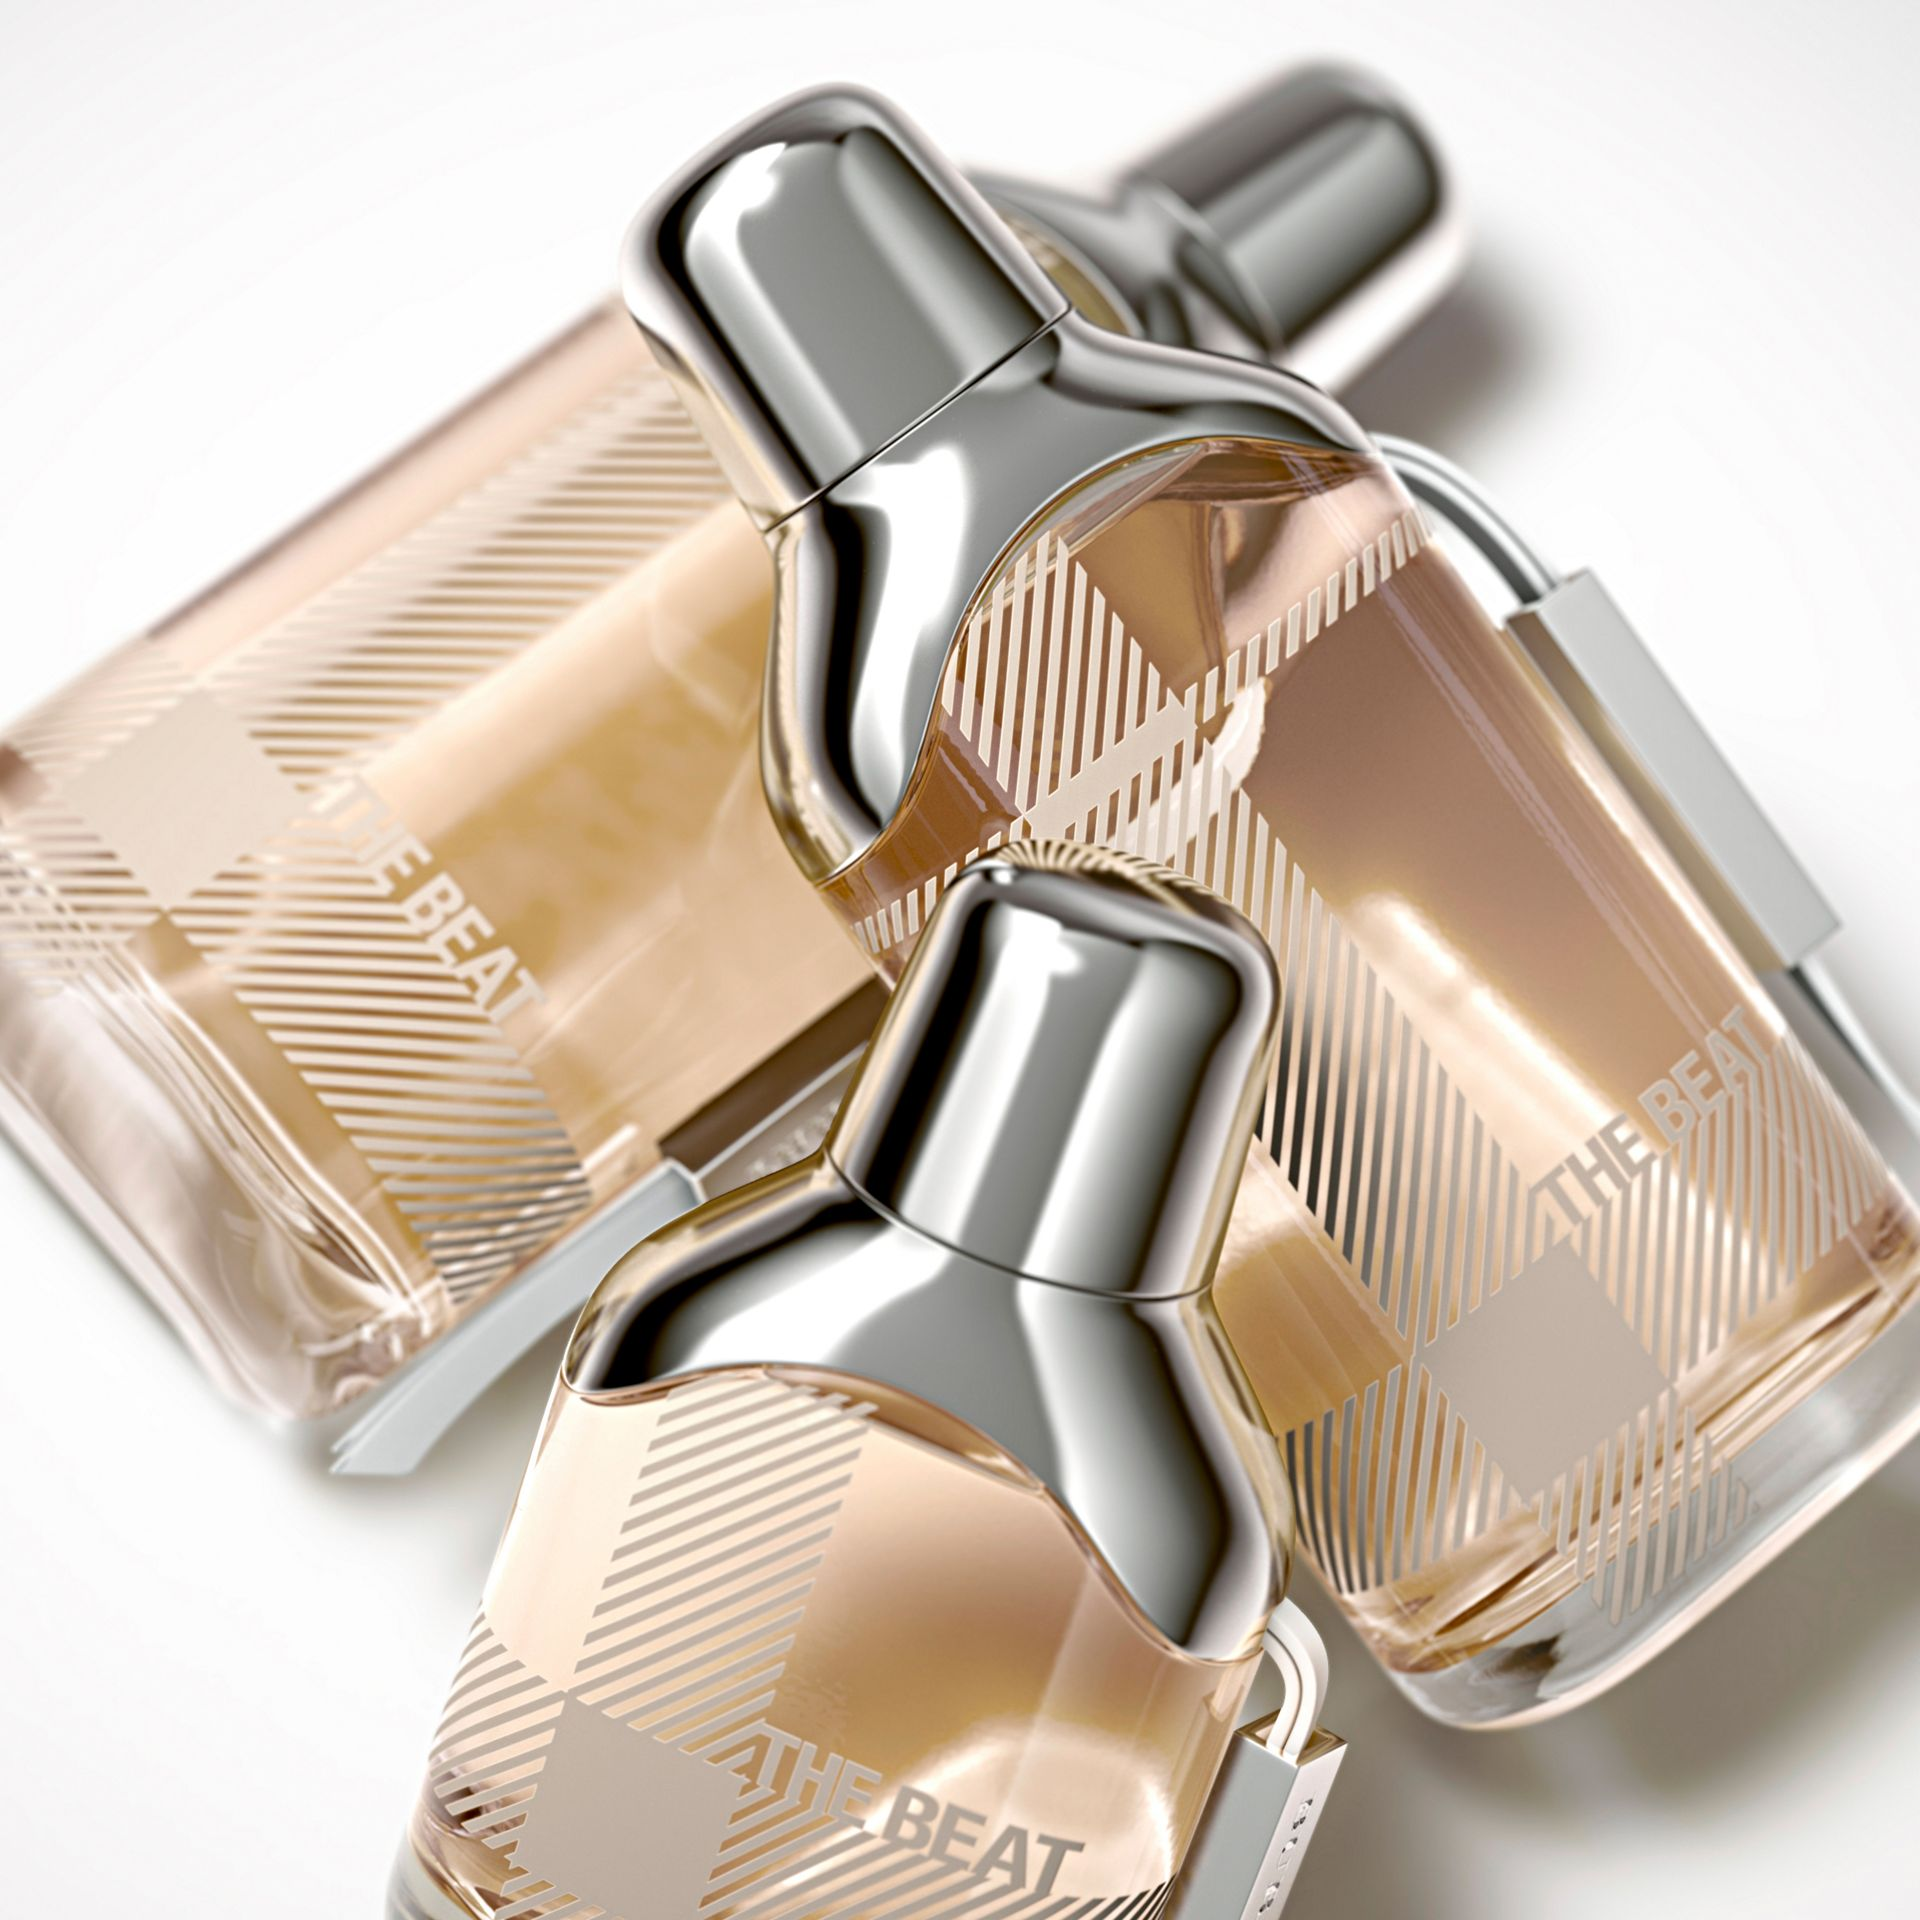 Eau de Parfum Burberry The Beat 75 ml - photo de la galerie 2